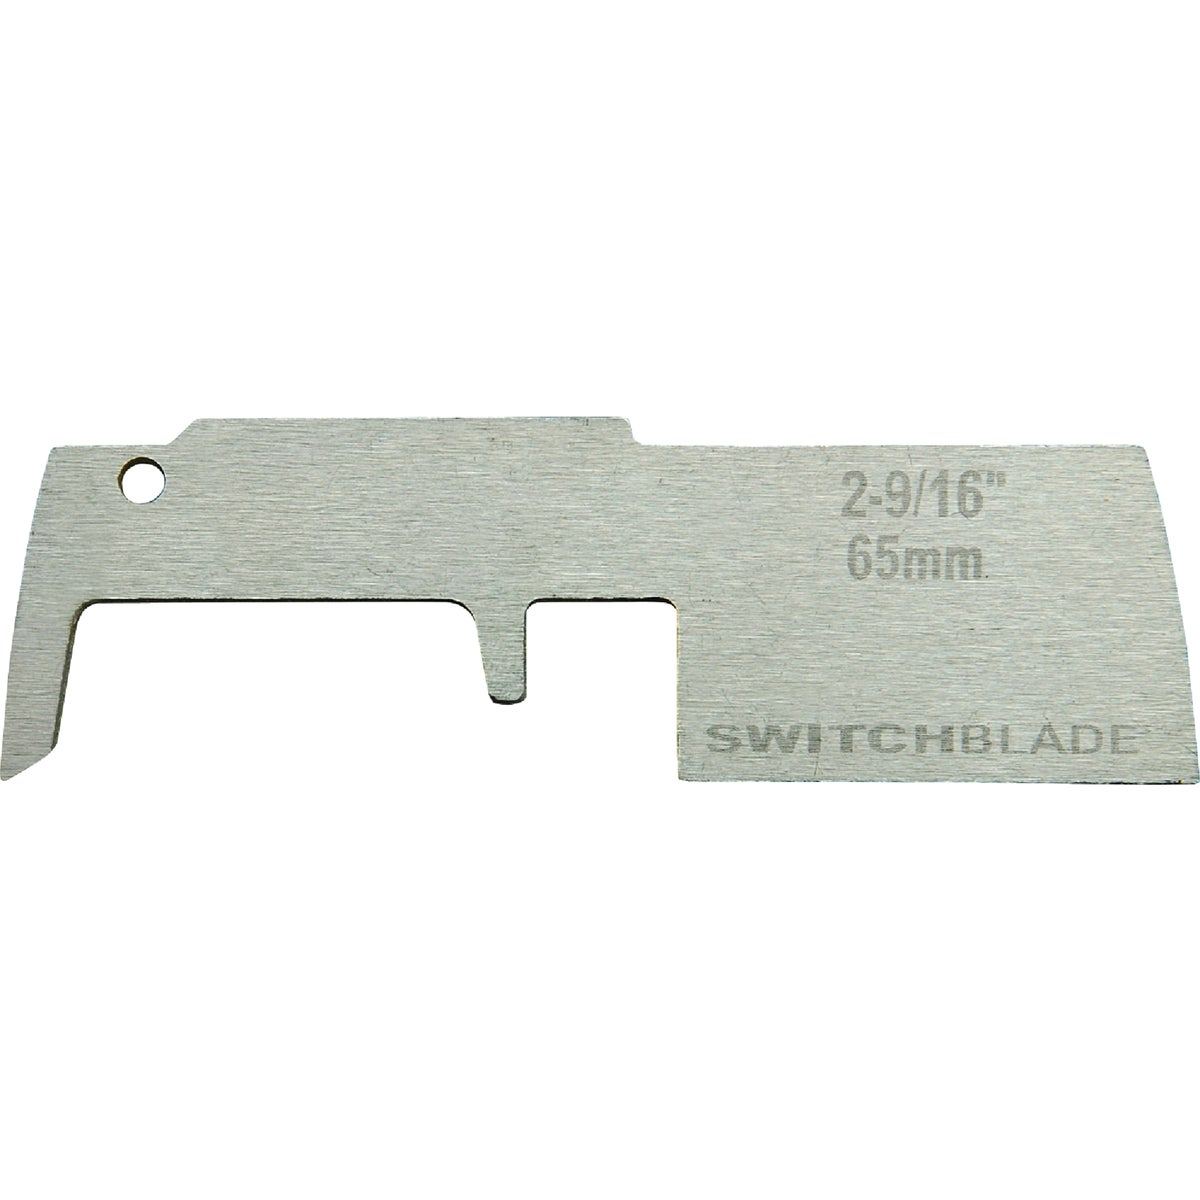 "1PK 1-3/8"" SWITCHBLADE - 48-25-5420 by Milwaukee Accessory"